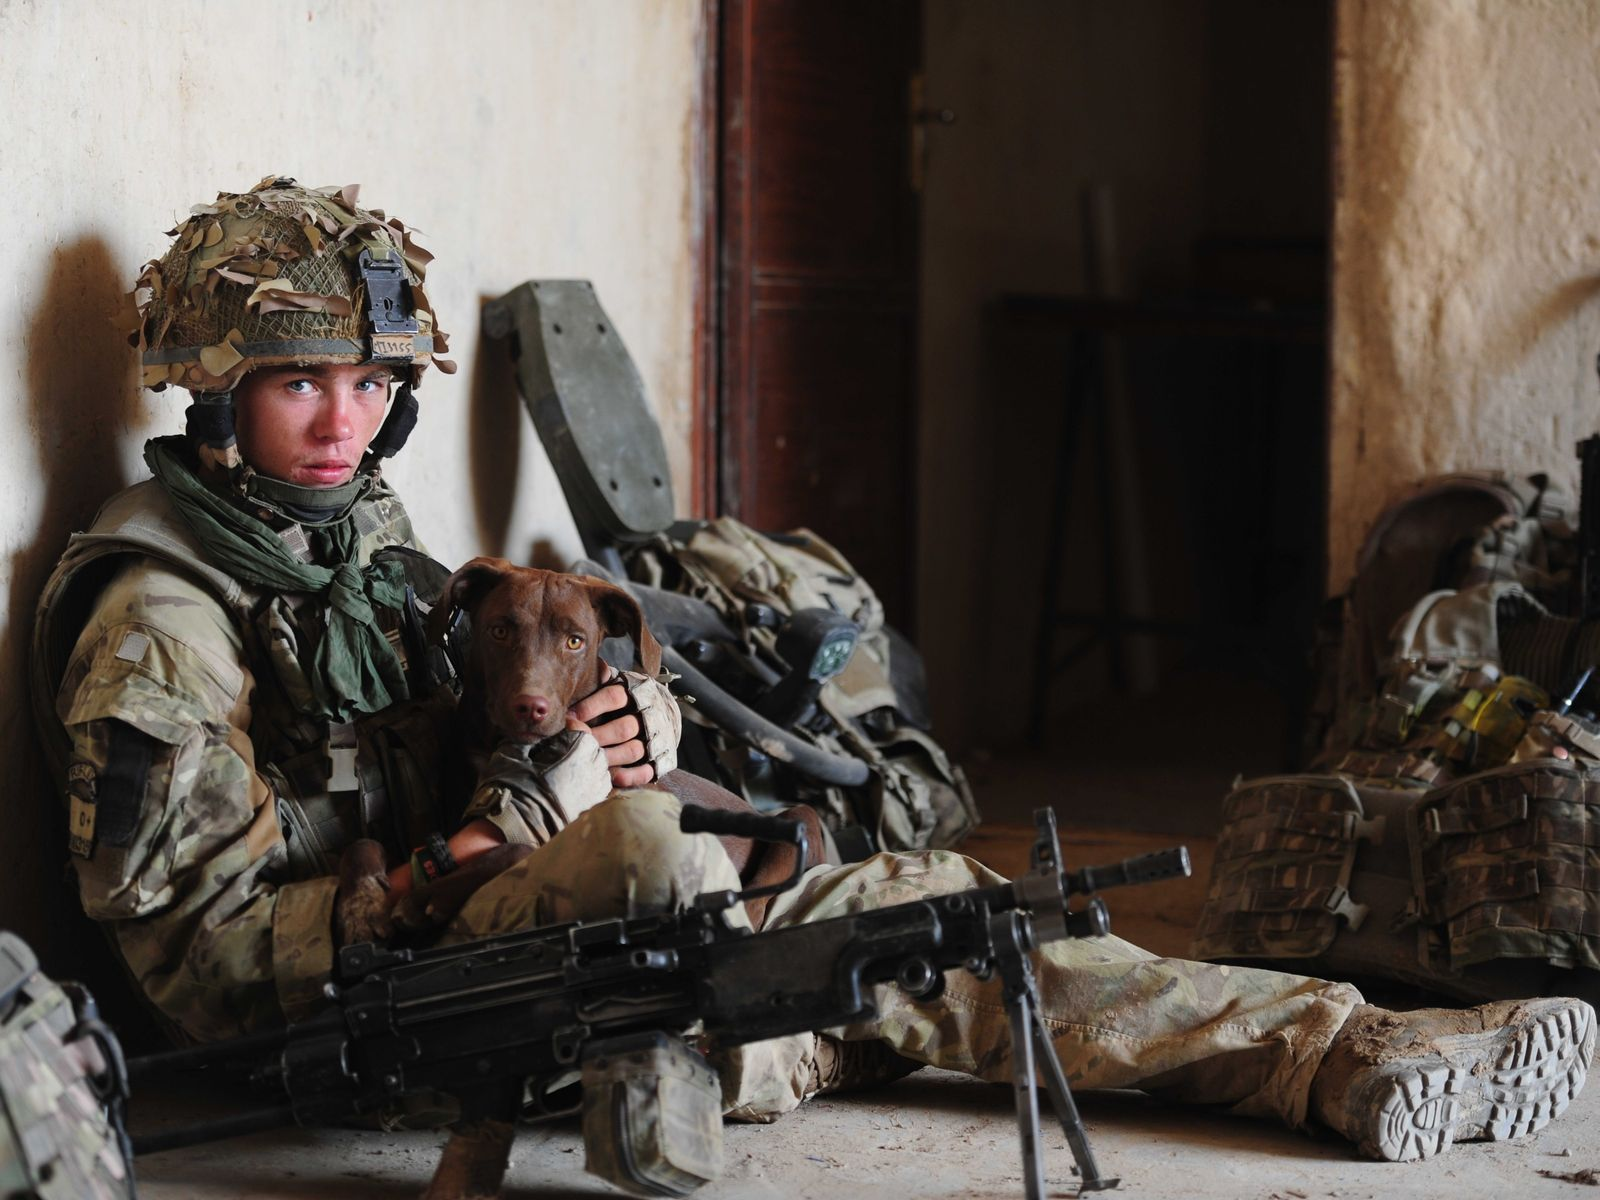 Lance Corporal Ross Mills, Afghanistan 2012.